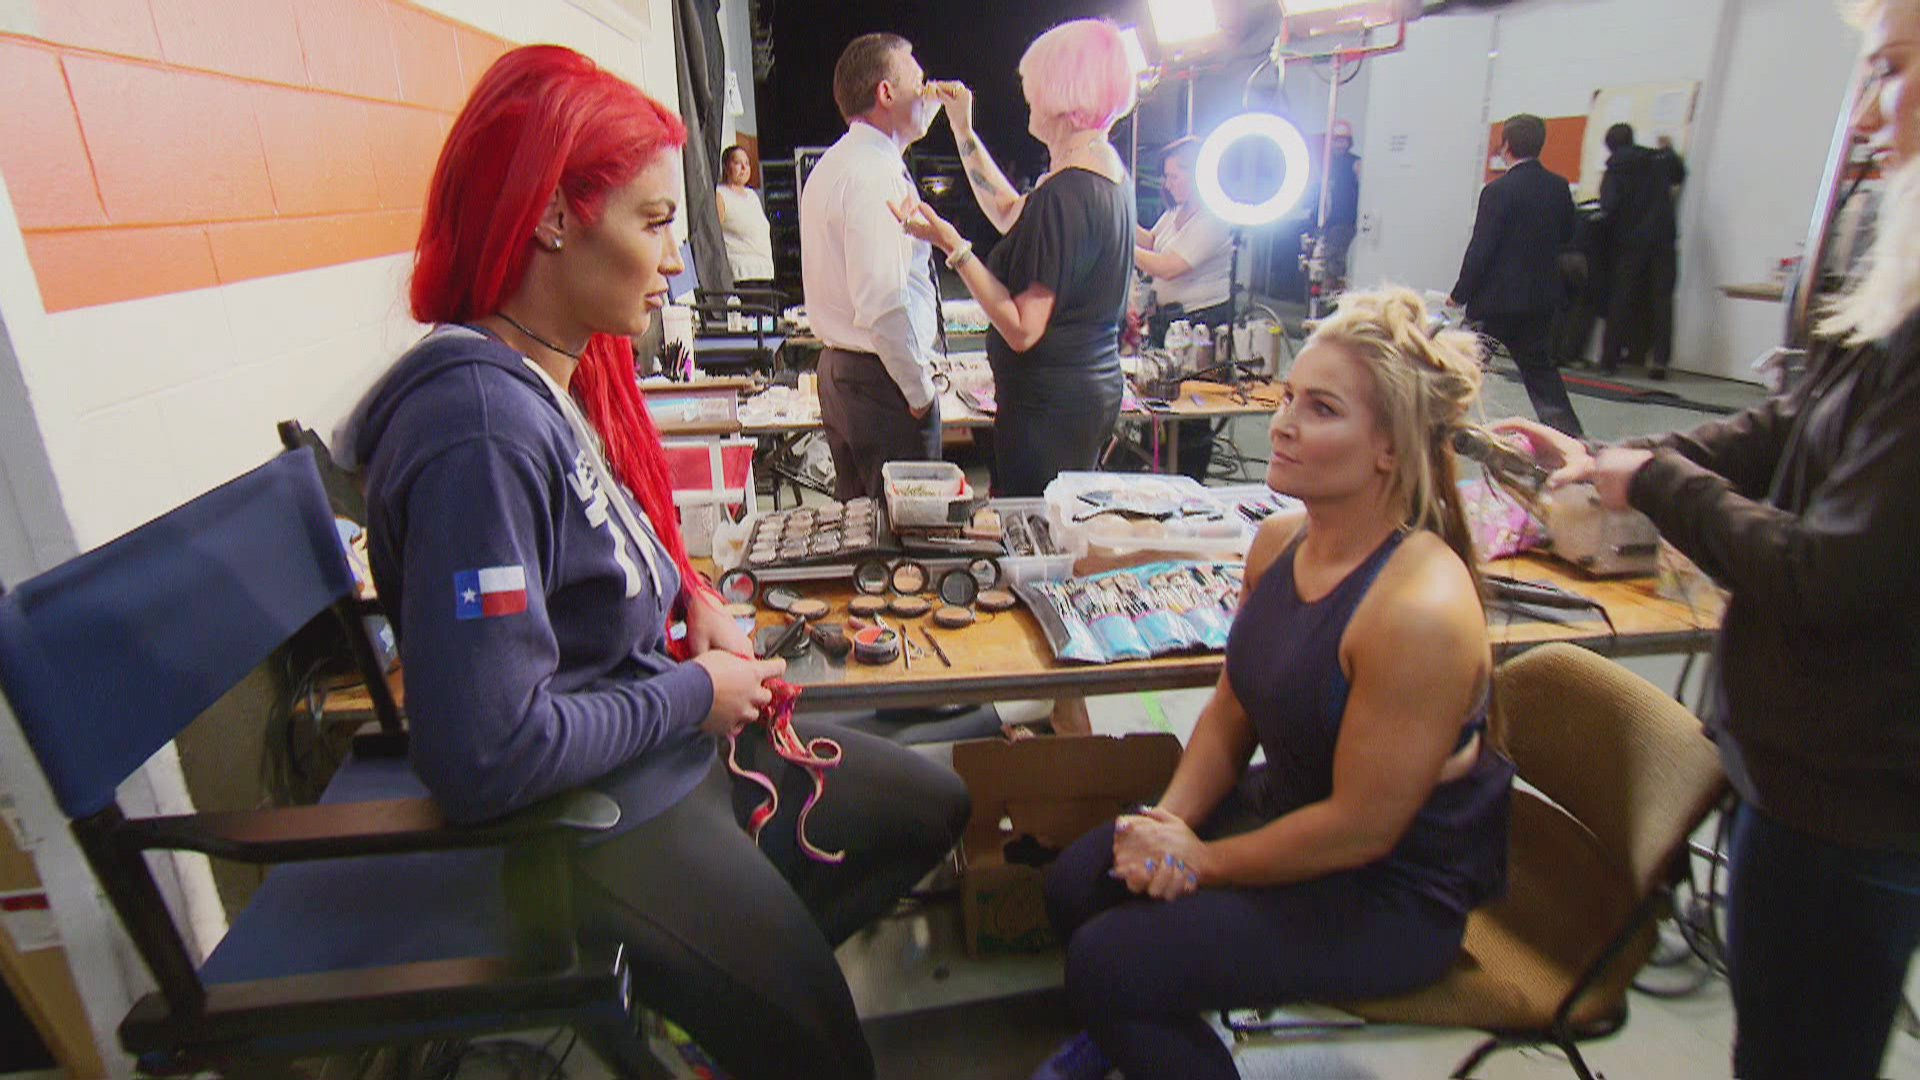 Eva expresses impatience with her current role, to which Natalya suggests she enjoy the moment and make the most of it.